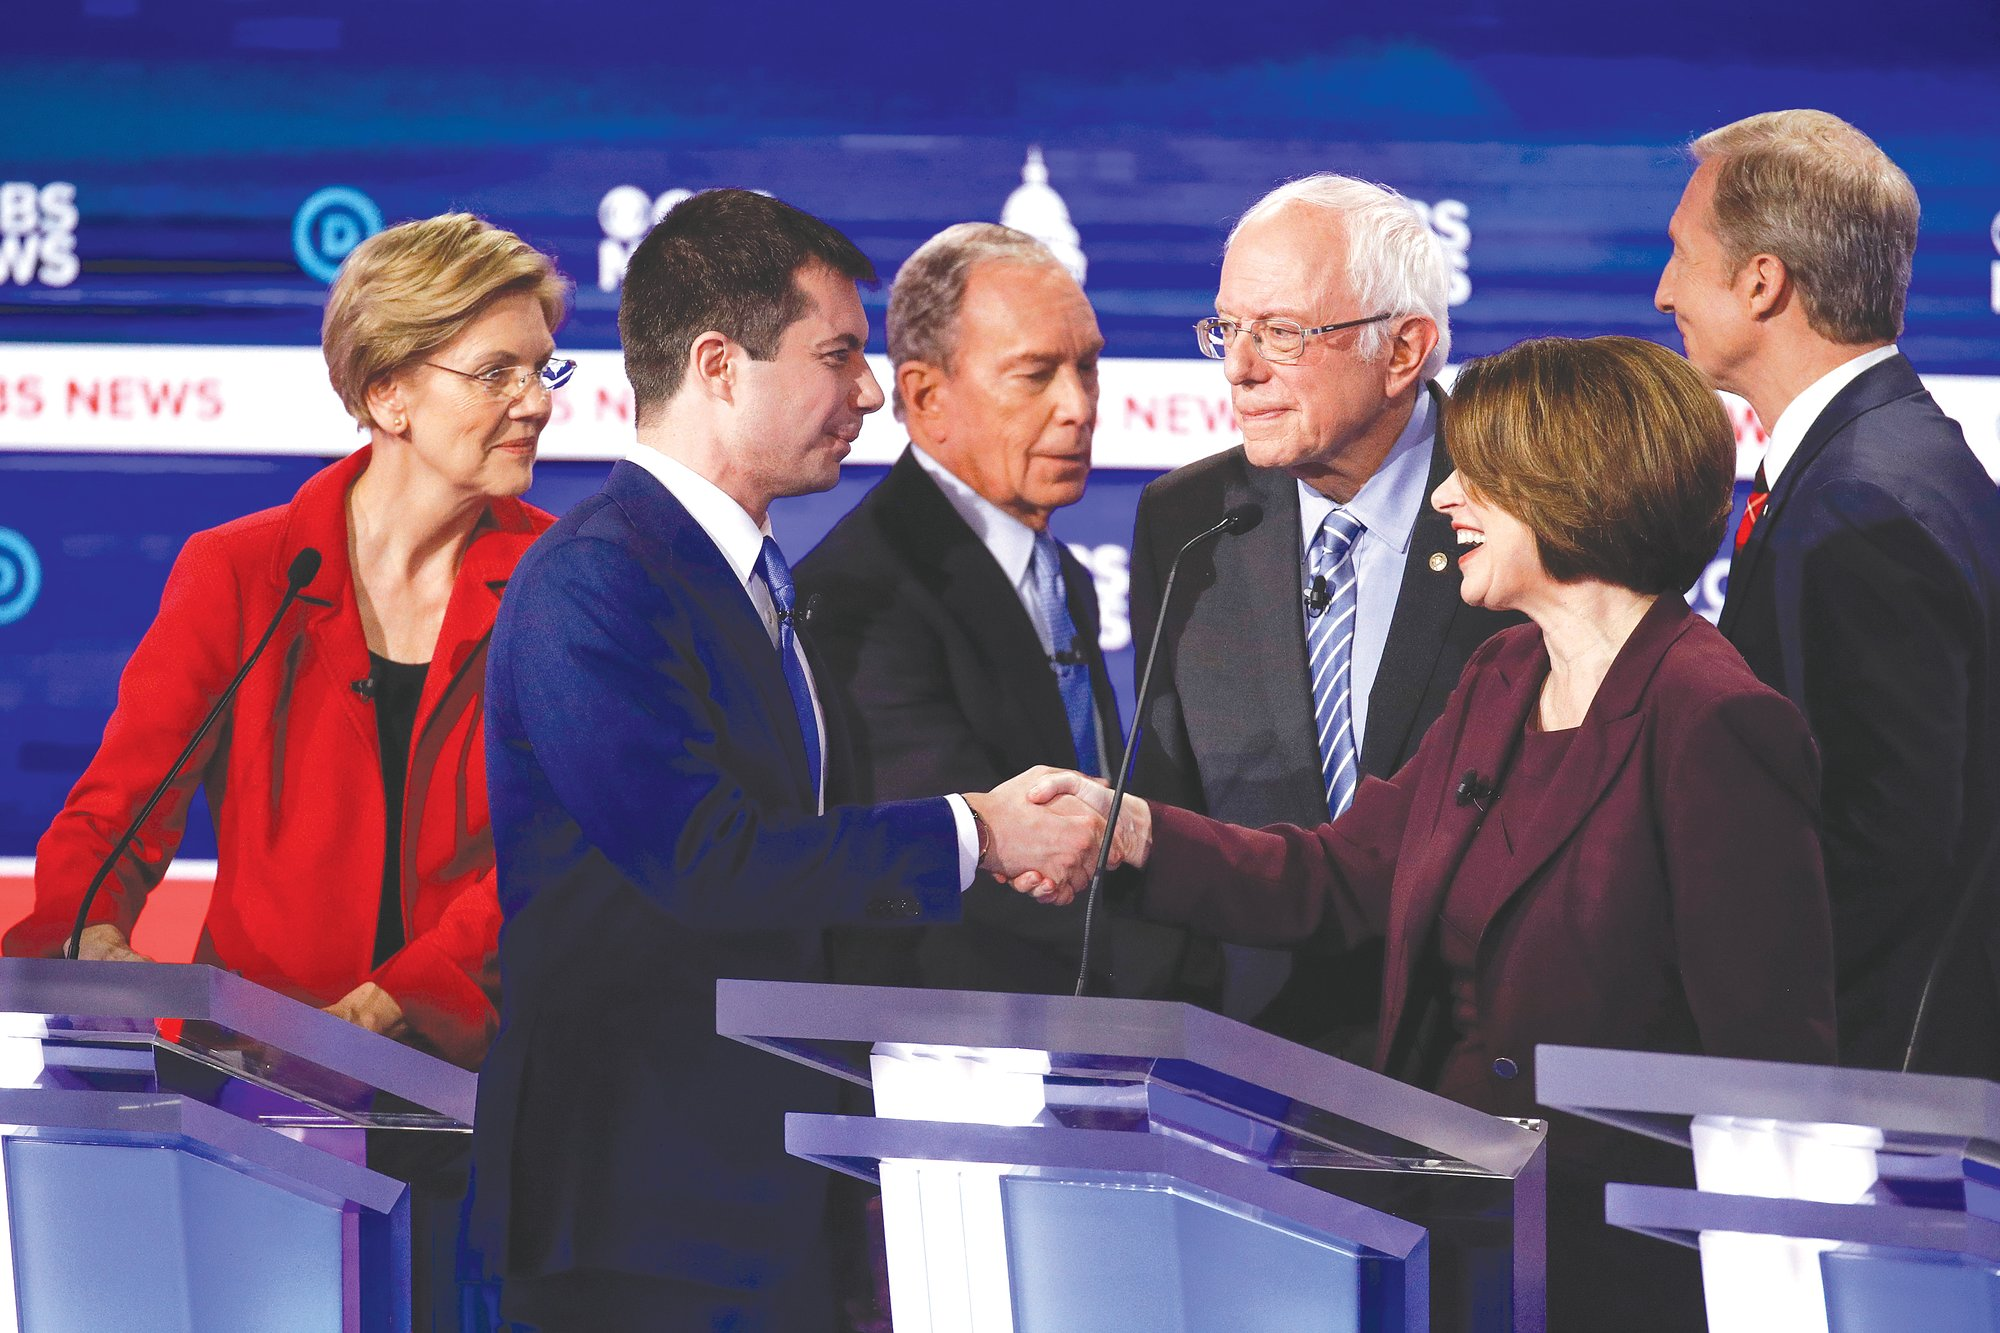 From left, Democratic presidential candidates, Sen. Elizabeth Warren, D-Mass.; former South Bend Mayor Pete Buttigieg; former New York City Mayor Mike Bloomberg; Sen. Bernie Sanders, I-Vt.; Sen. Amy Klobuchar, D-Minn.; and businessman Tom Steyer greet one another on stage at the end of the Democratic presidential primary debate at the Gaillard Center on Tuesday in Charleston, co-hosted by CBS News and the Congressional Black Caucus Institute.